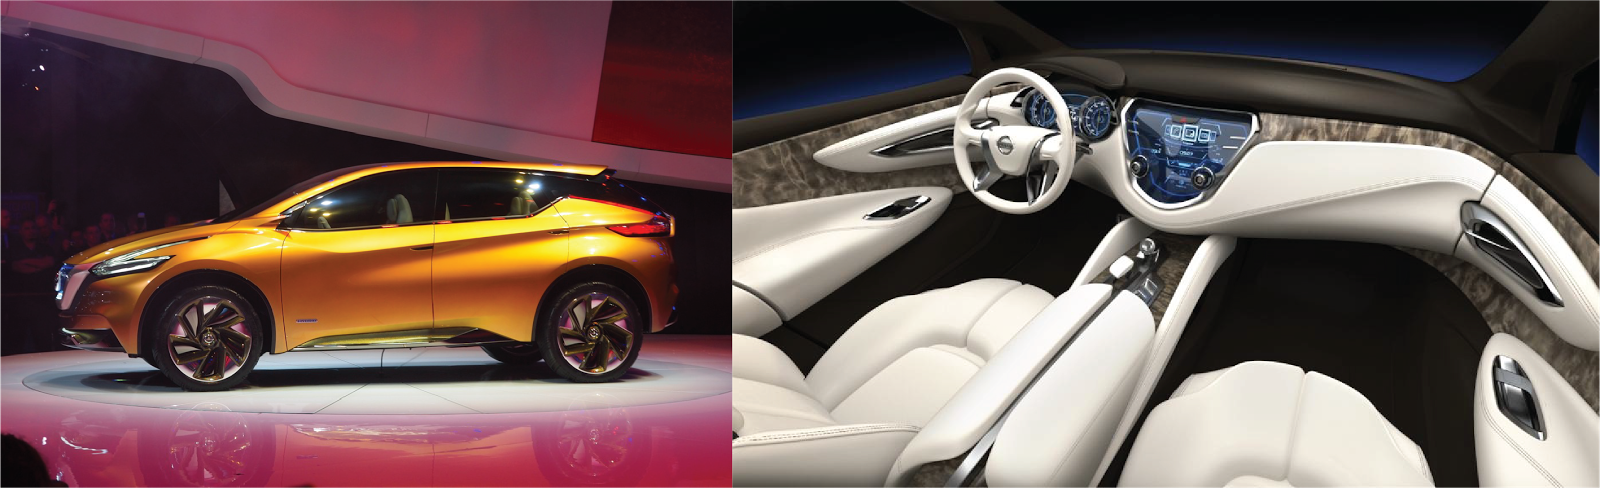 Nissan resonance concept gives glimpse of next murano autoblog html autos weblog